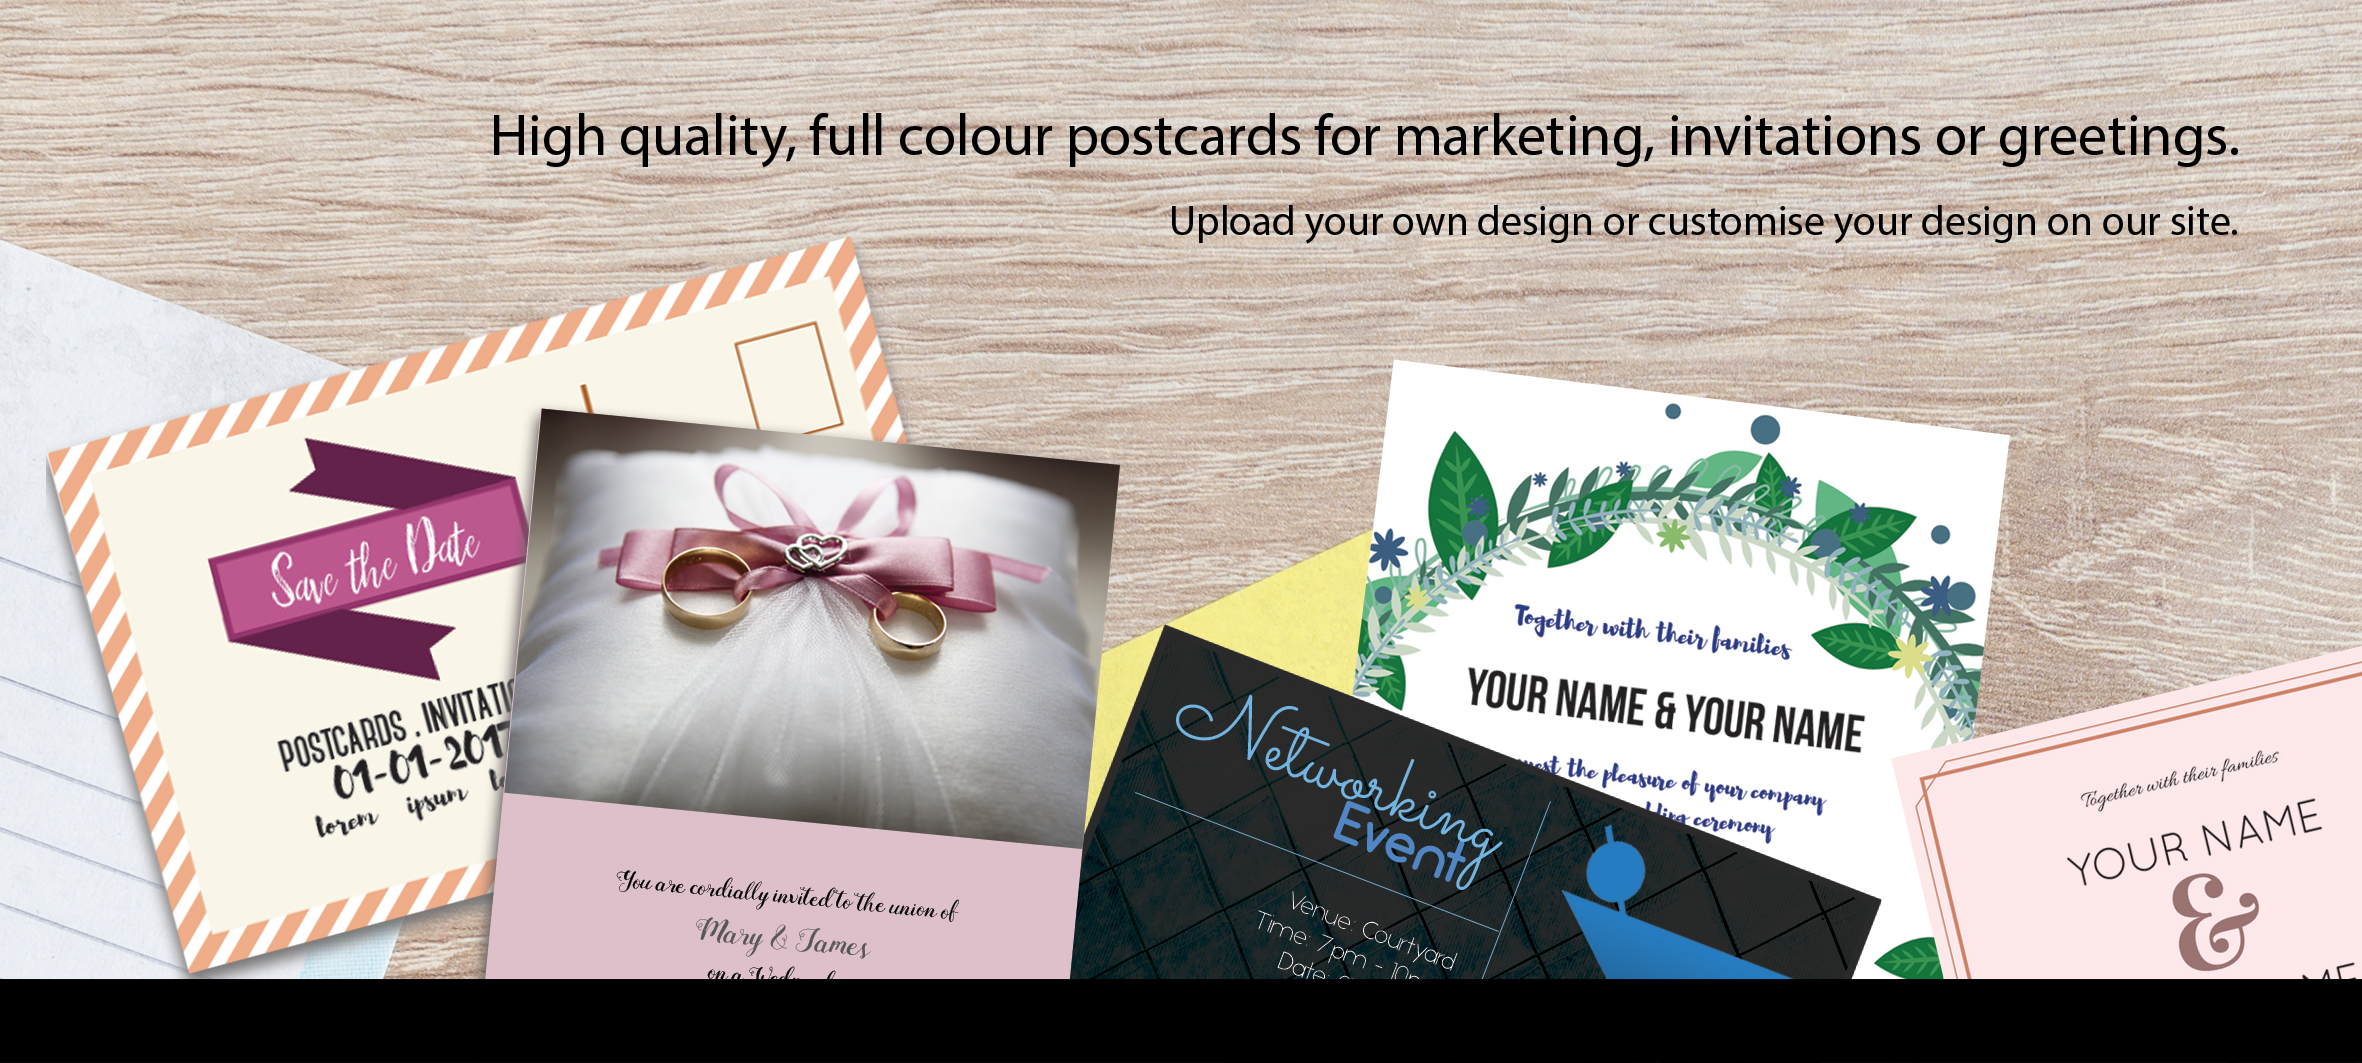 Tampines printing services postcards printing services quality for urgent postcards in small quantities 10pcs 50pcs please bring artwork in usb thumb drive to the print counter we will advise how best to print it reheart Image collections